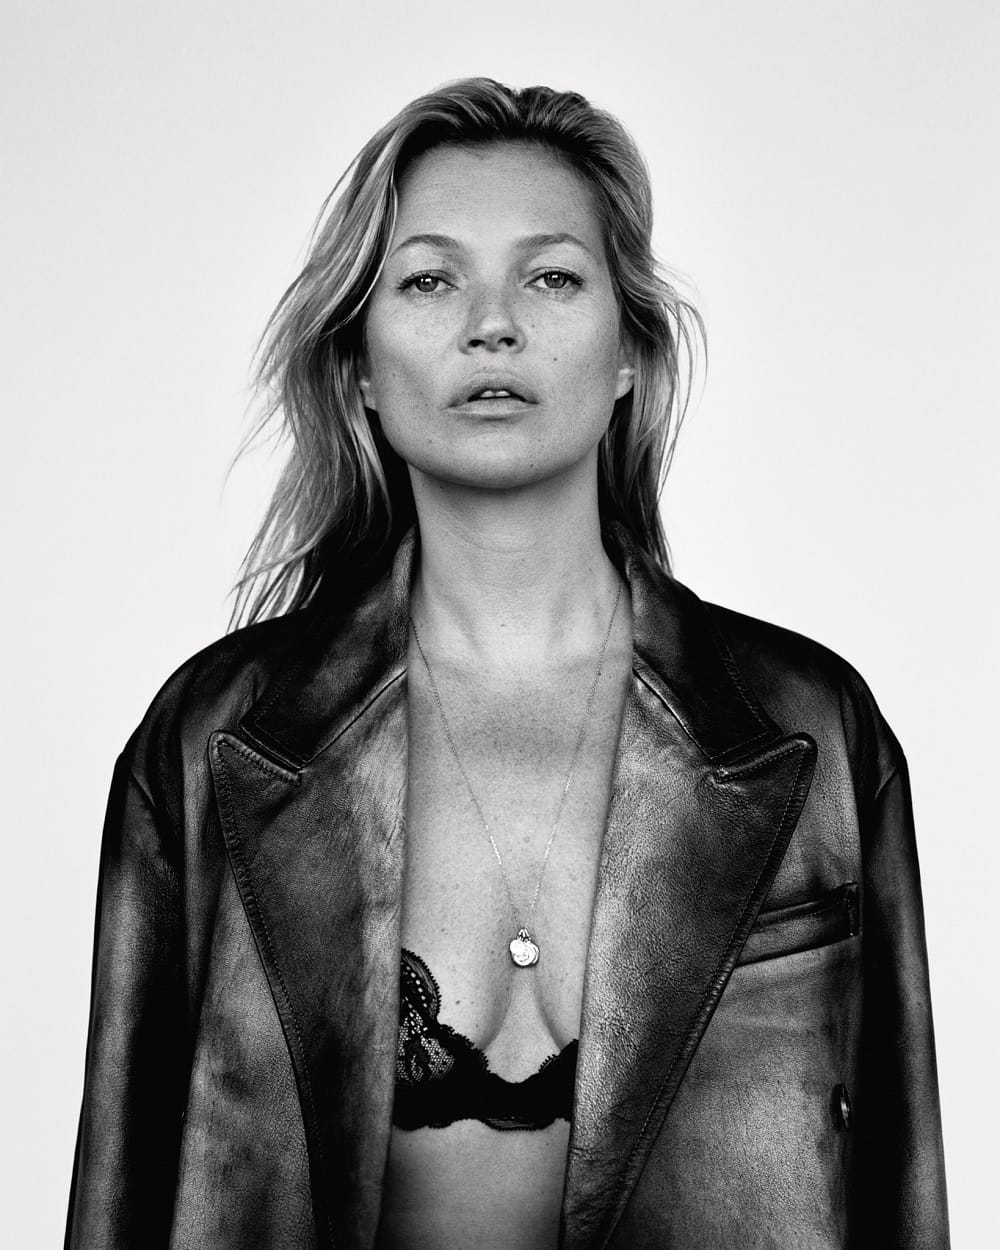 Kate Moss nude (92 fotos), pictures Sideboobs, YouTube, butt 2019